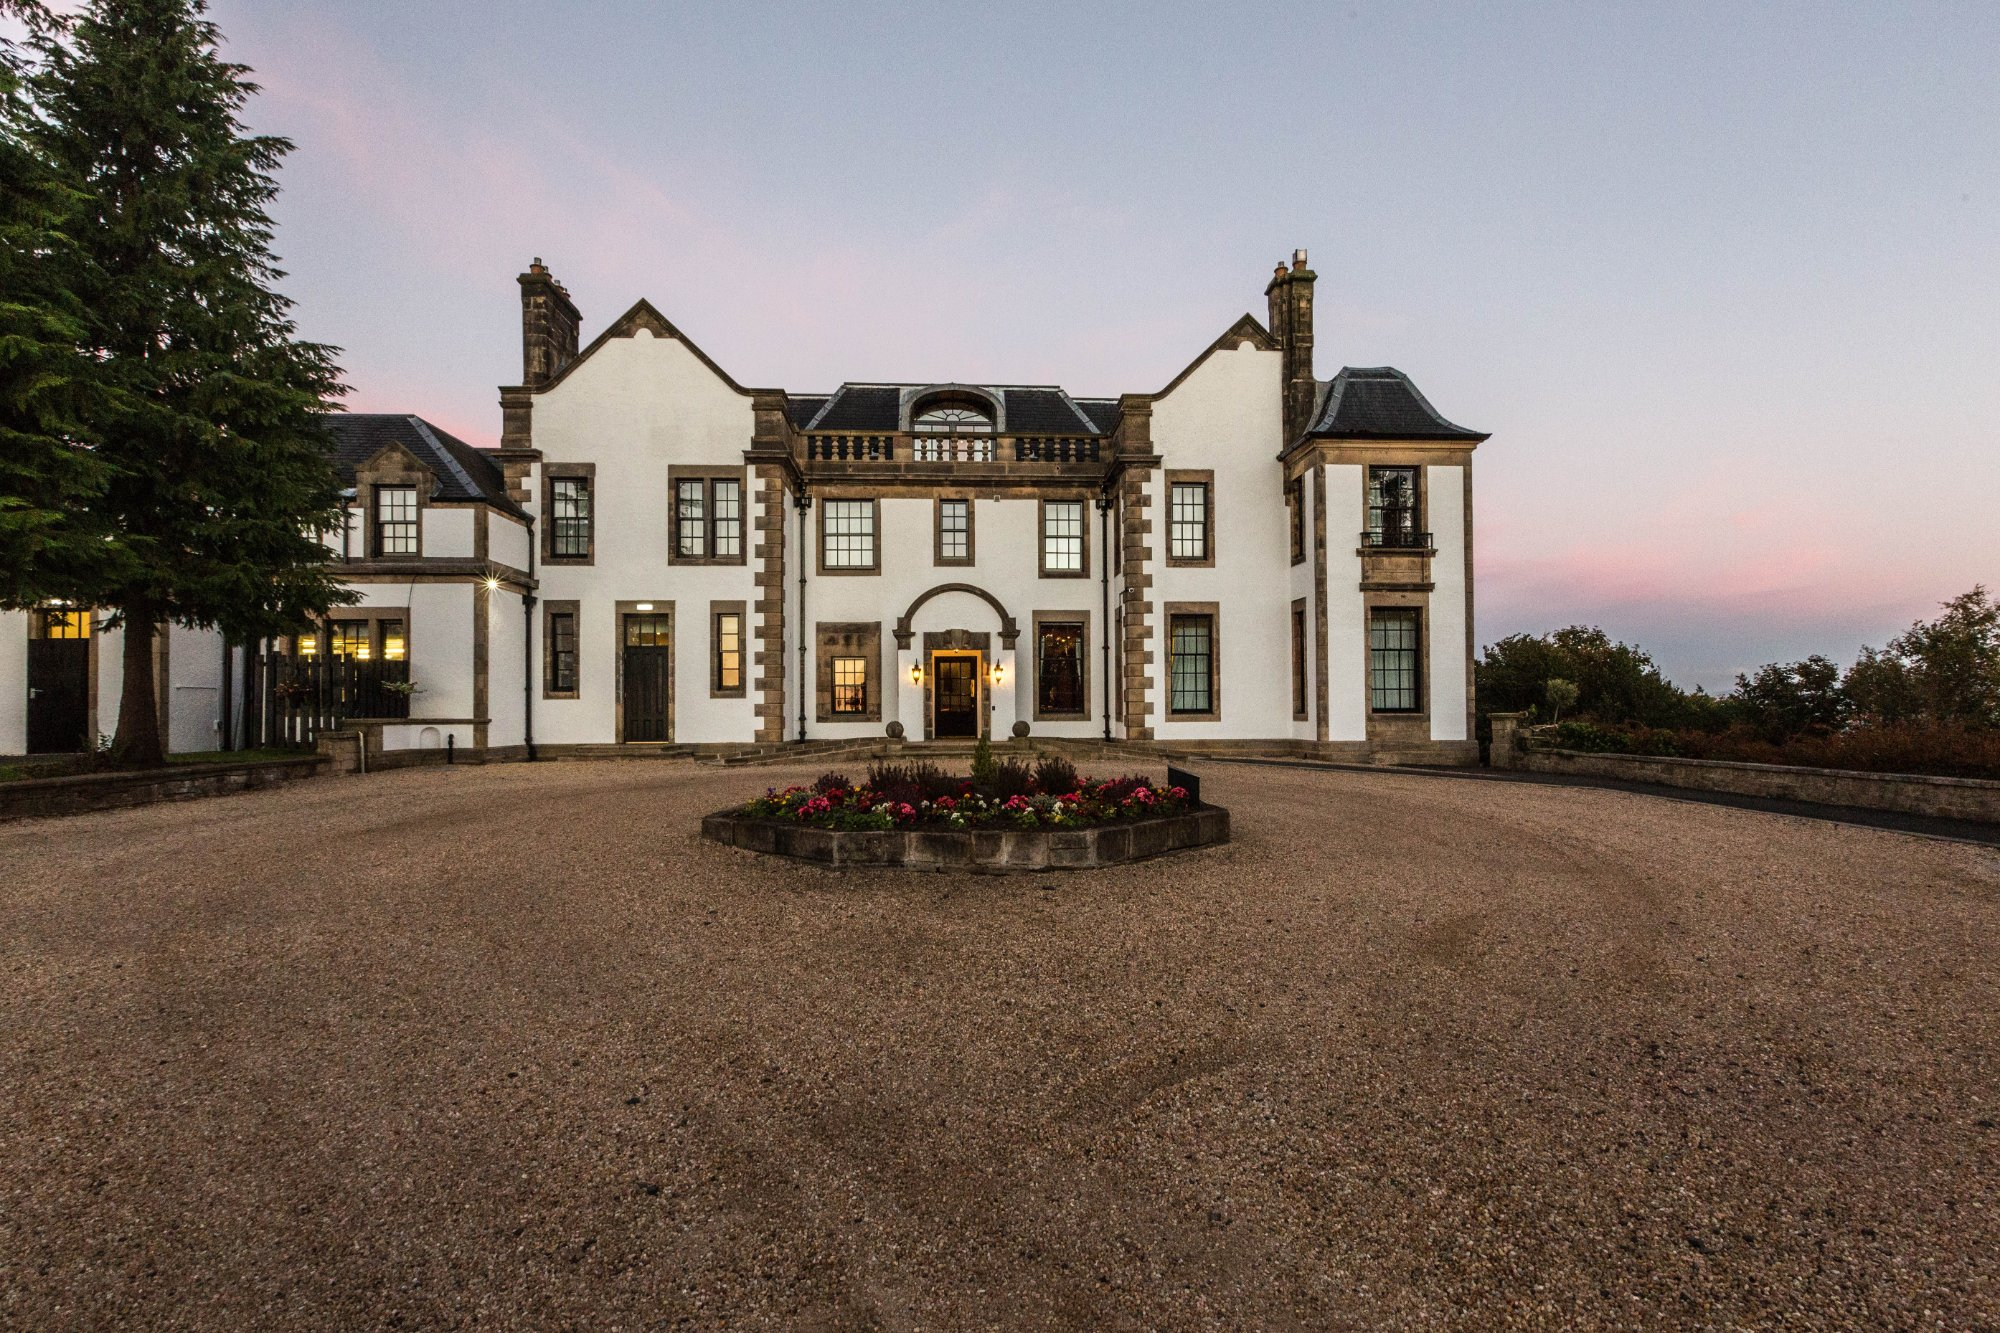 Gleddoch Hotel, Spa & Golf